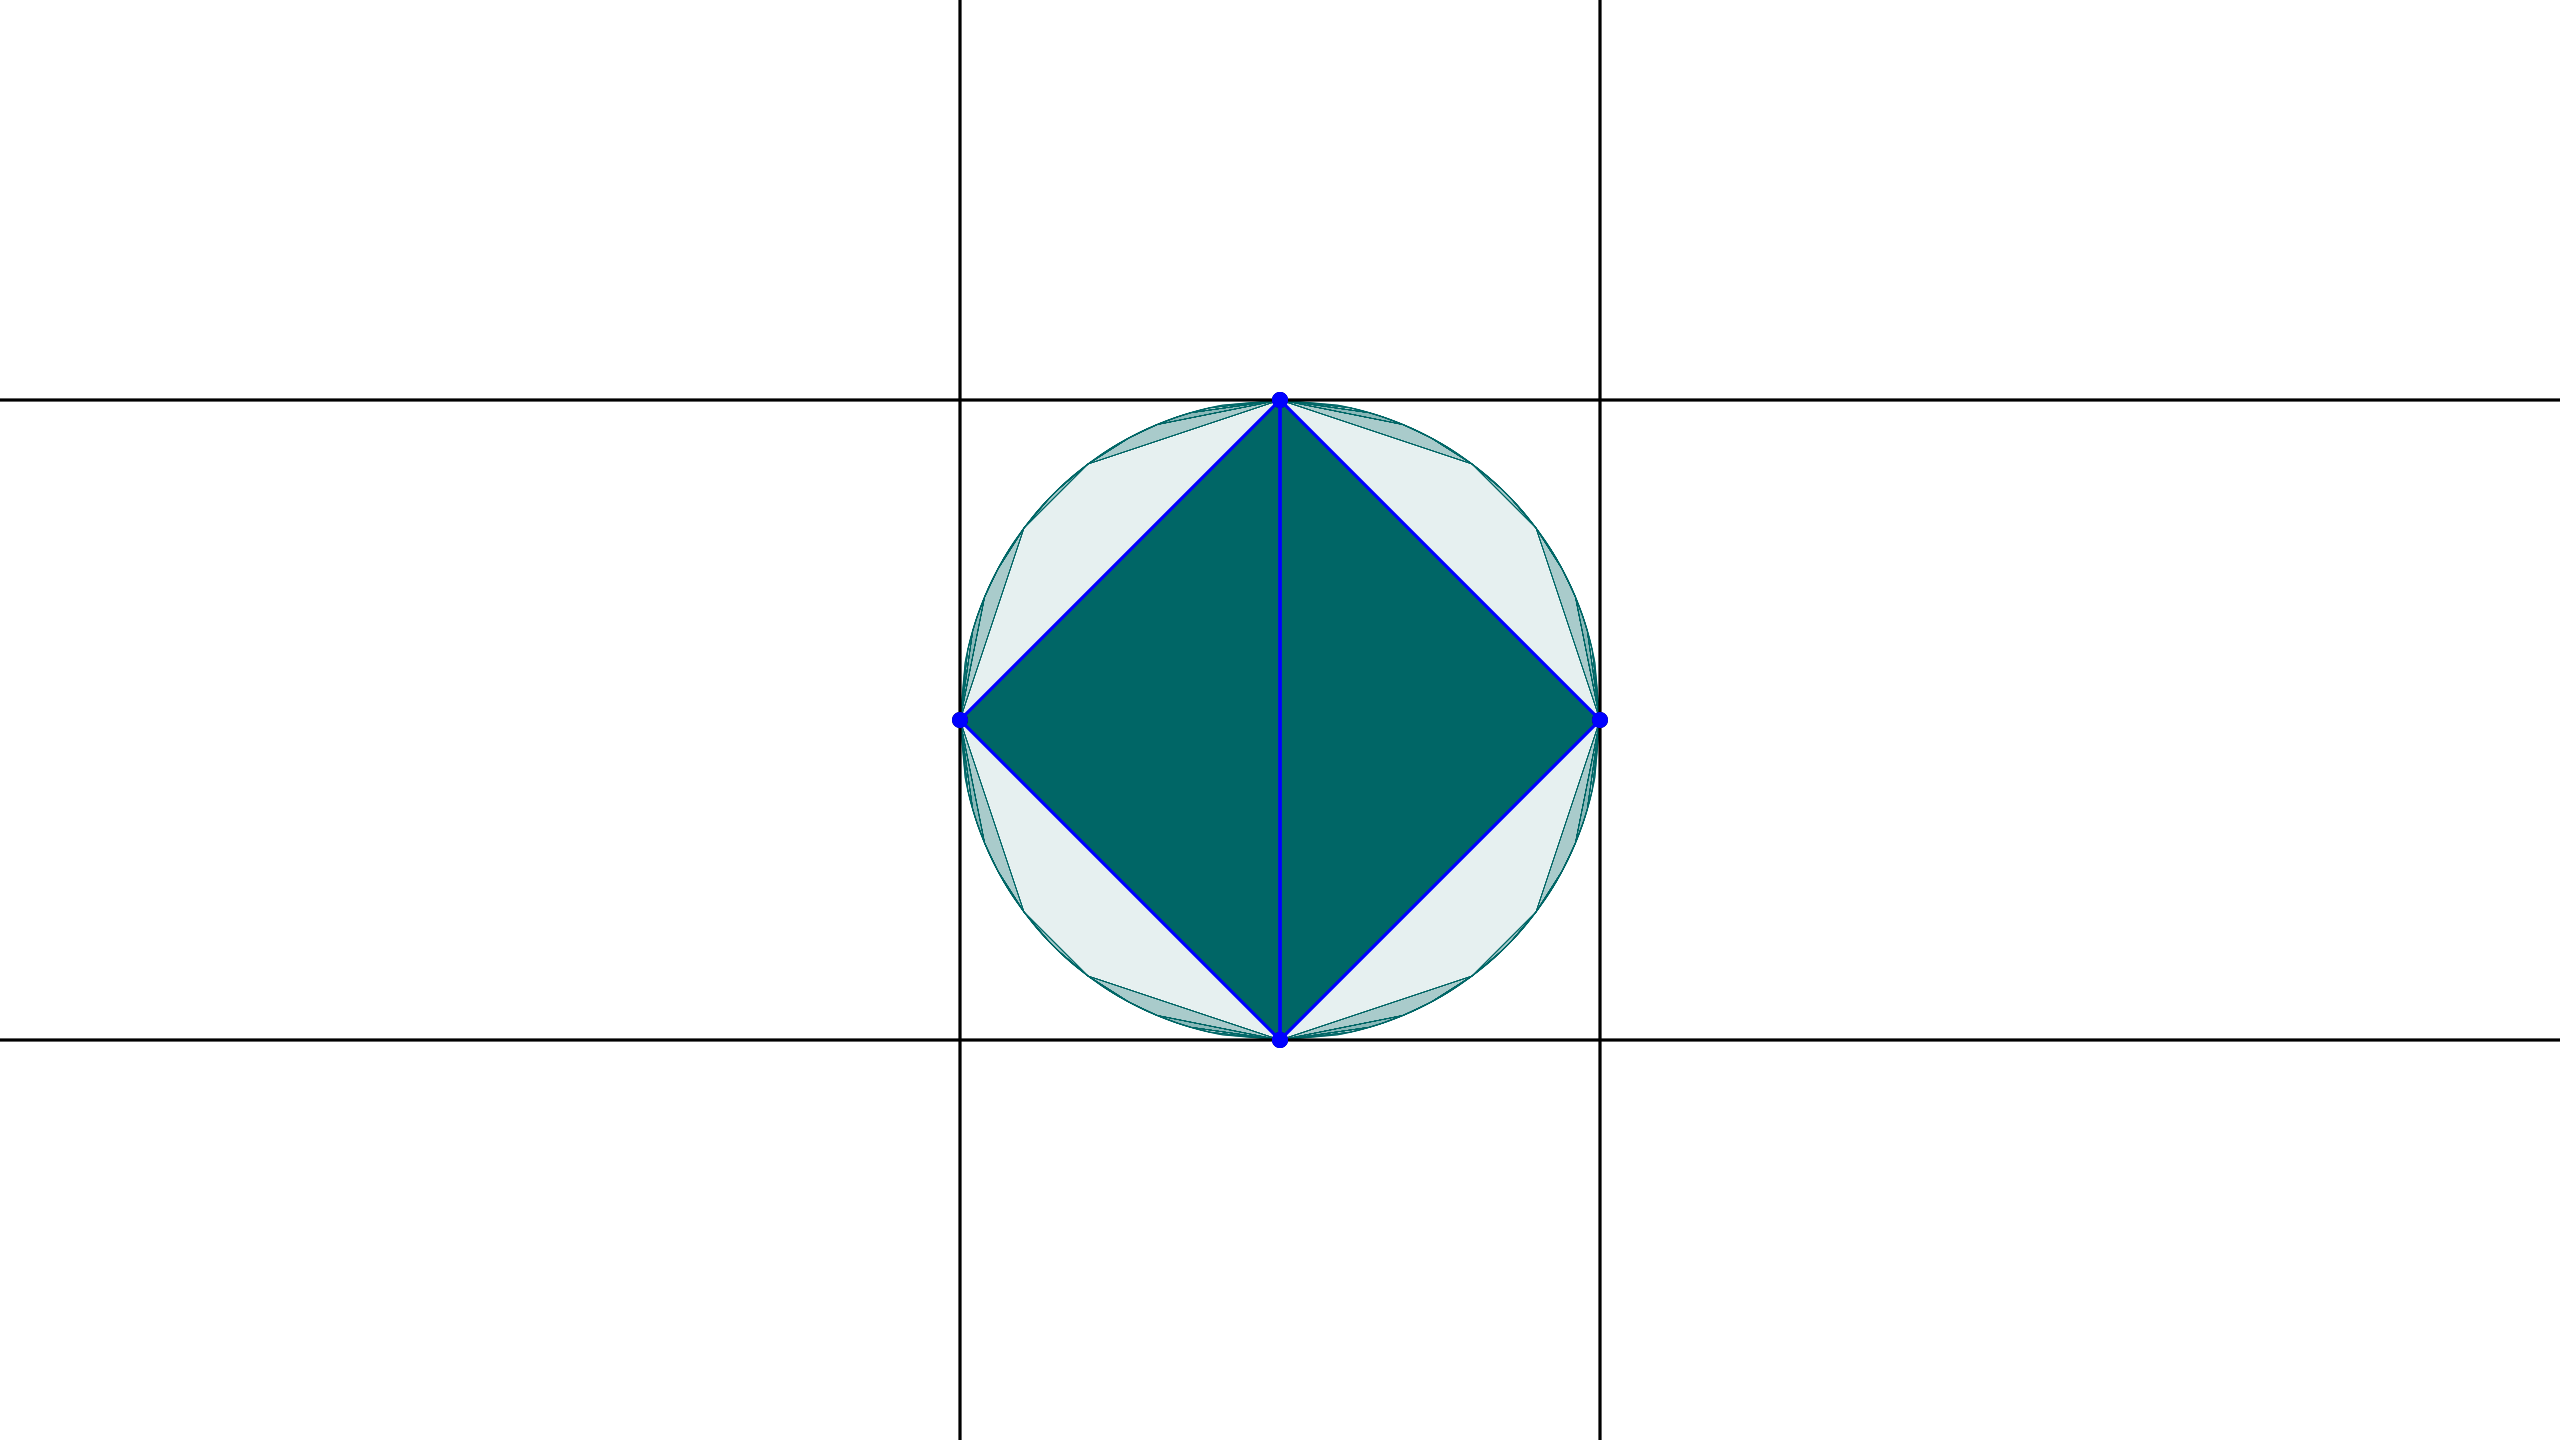 Convex set constructed from a quadruple of flags